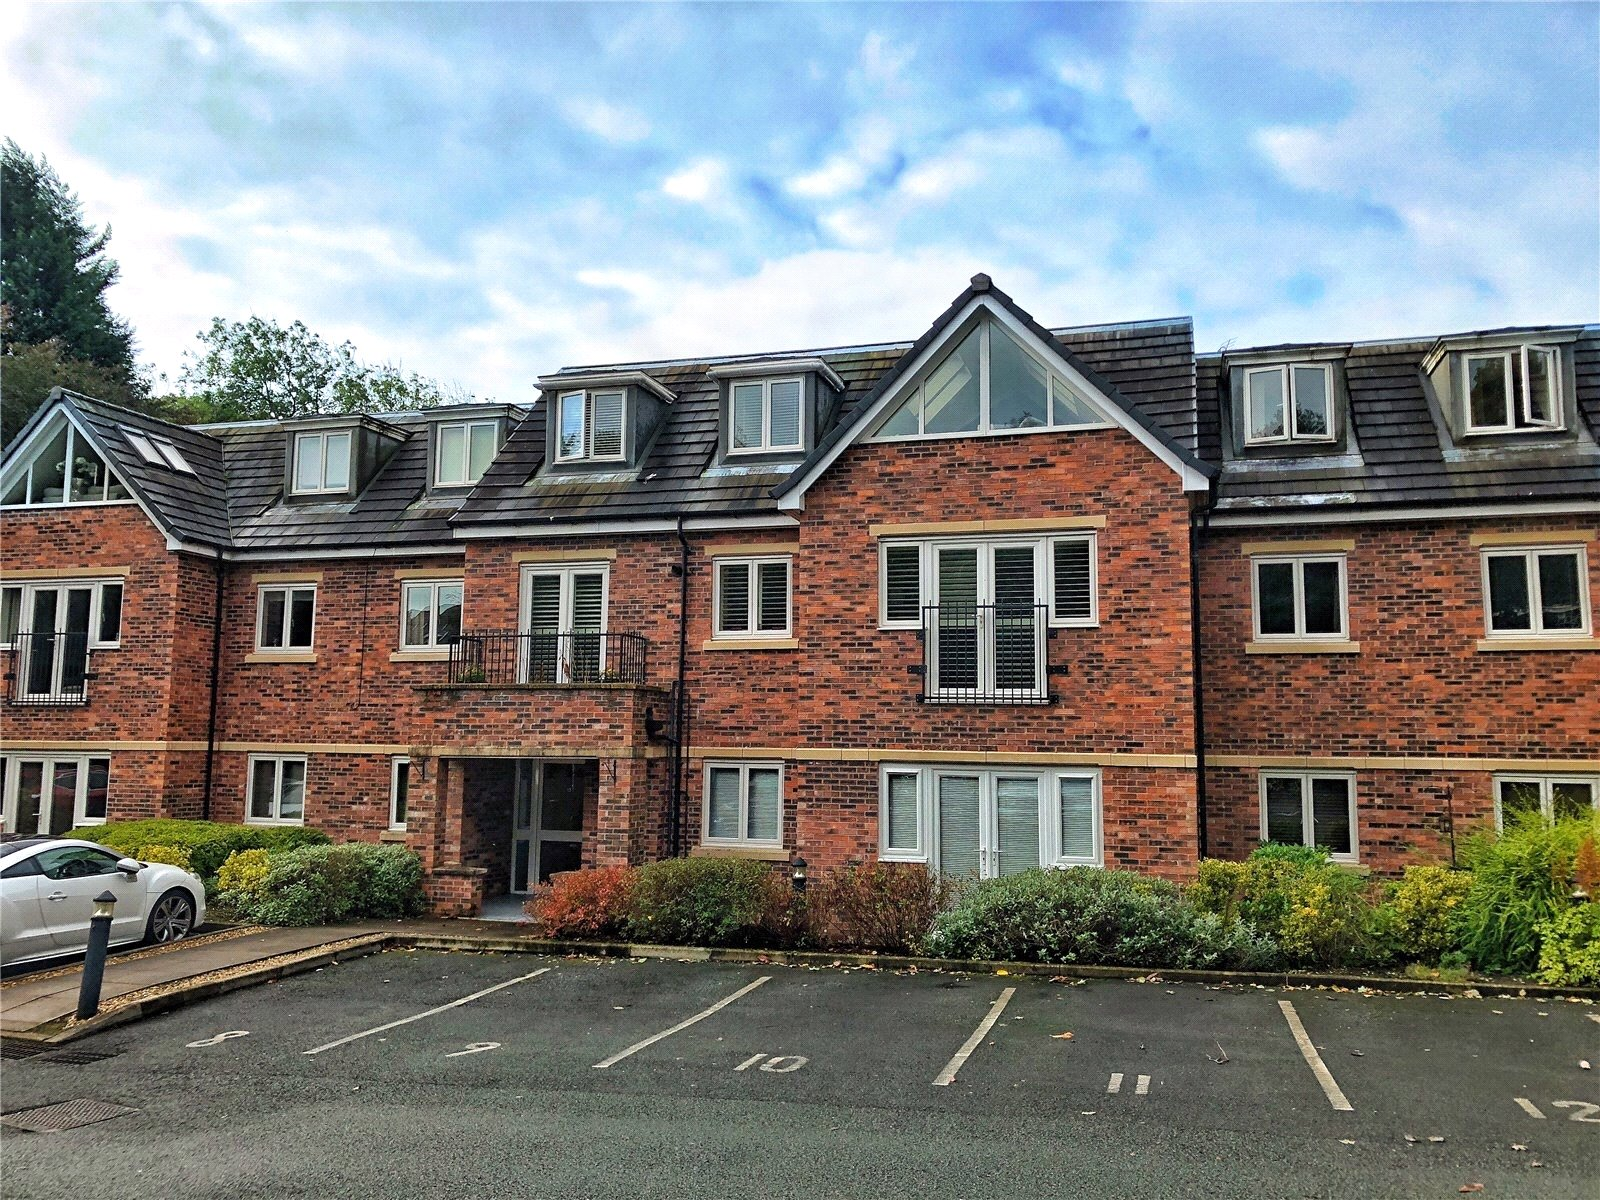 2 Bedrooms Apartment Flat for sale in Norden Lodge, Clay Lane, Norden, Rochdale, OL11